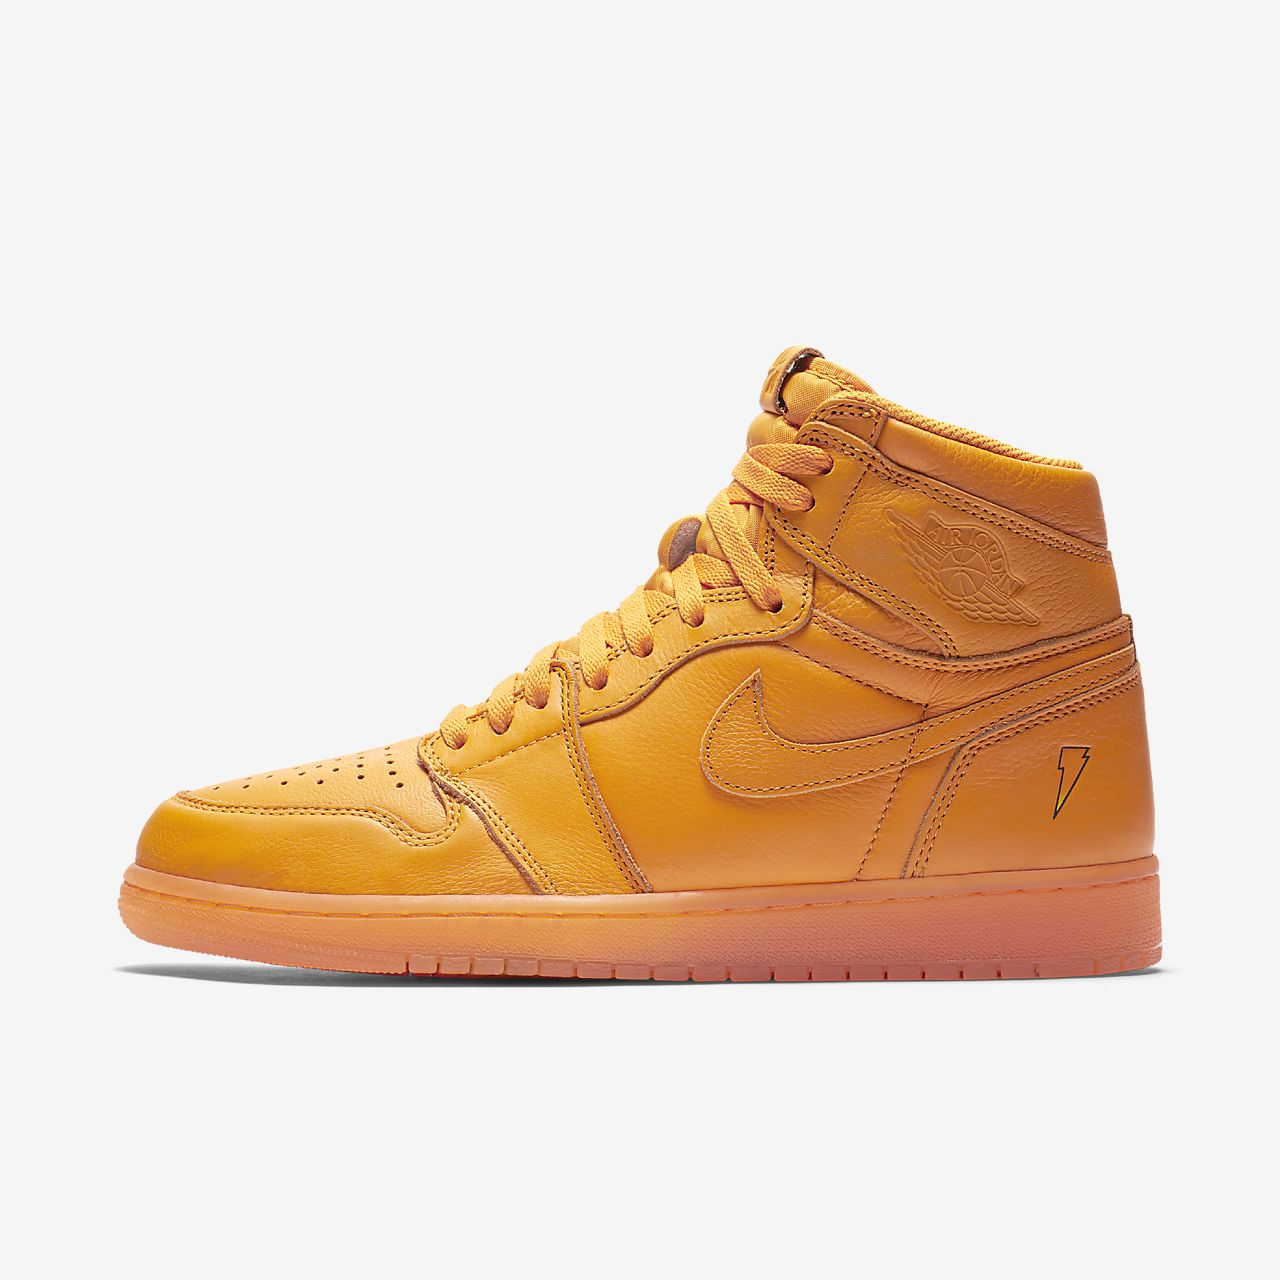 Air Jordan 1 Retro High OG  Orange  Men s Shoe. Nike.com ZA 776f1921b